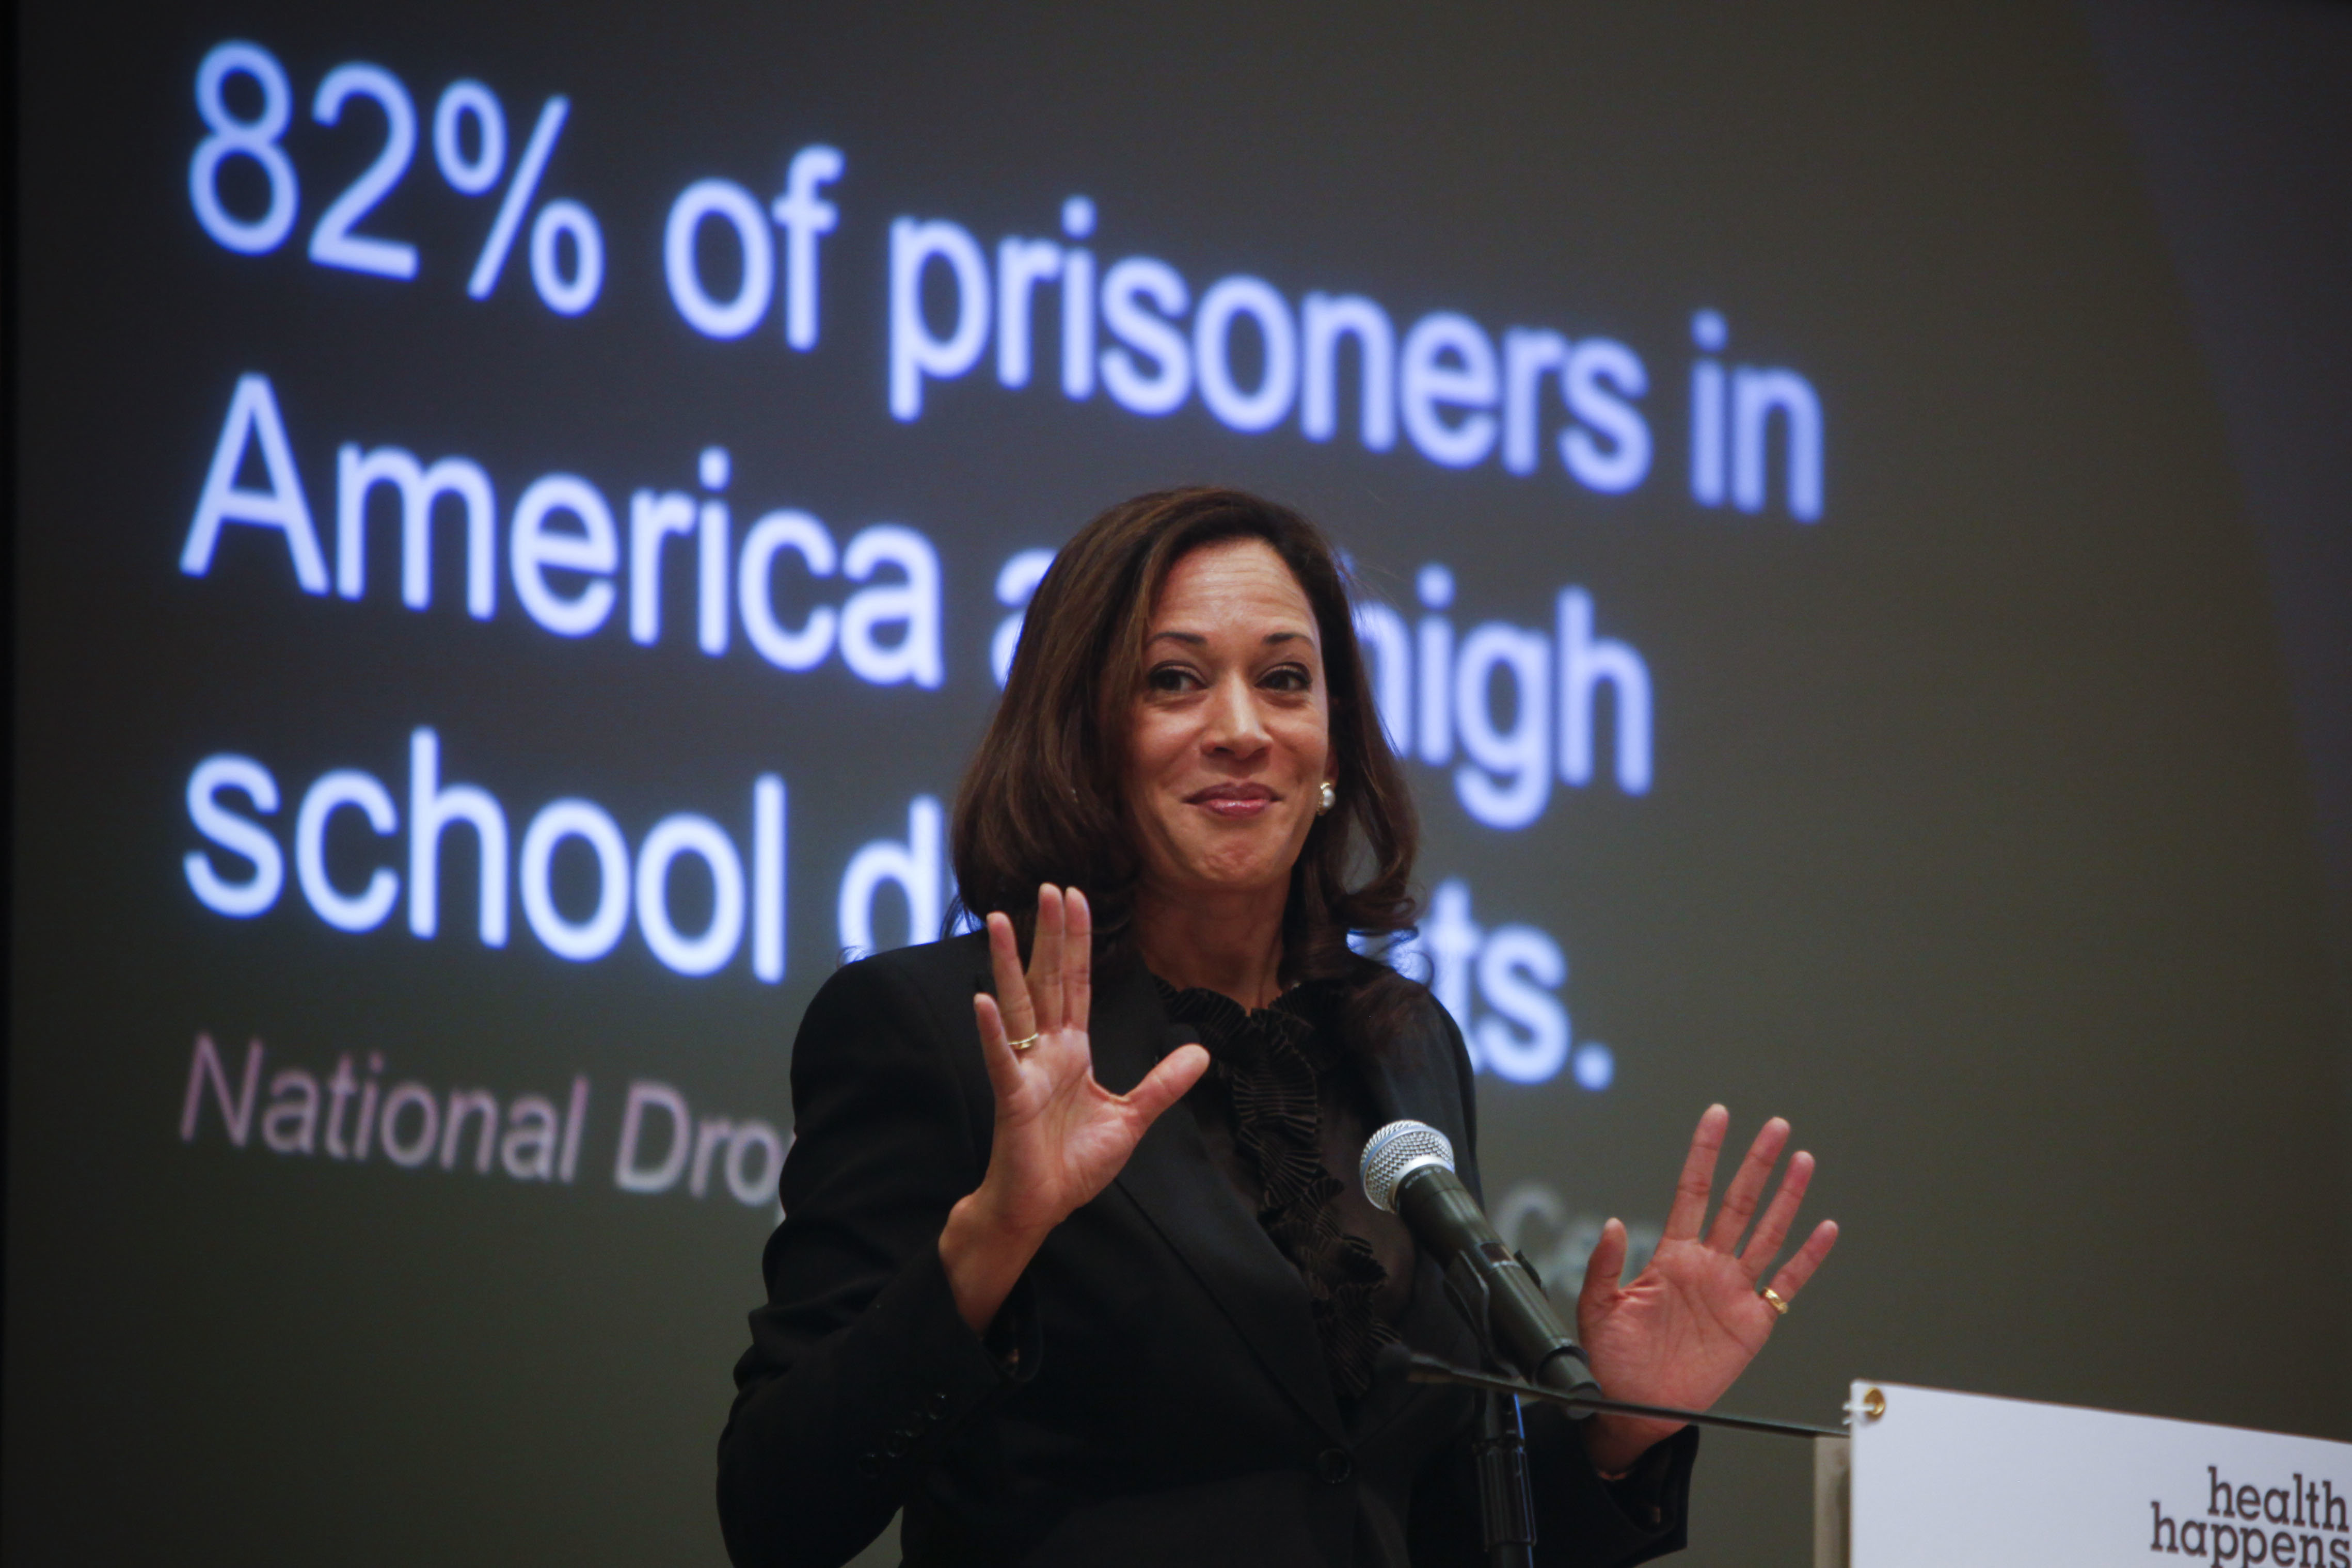 Then-California Attorney General Kamala Harris discusses the first statewide statistics on the elementary school truancy cris